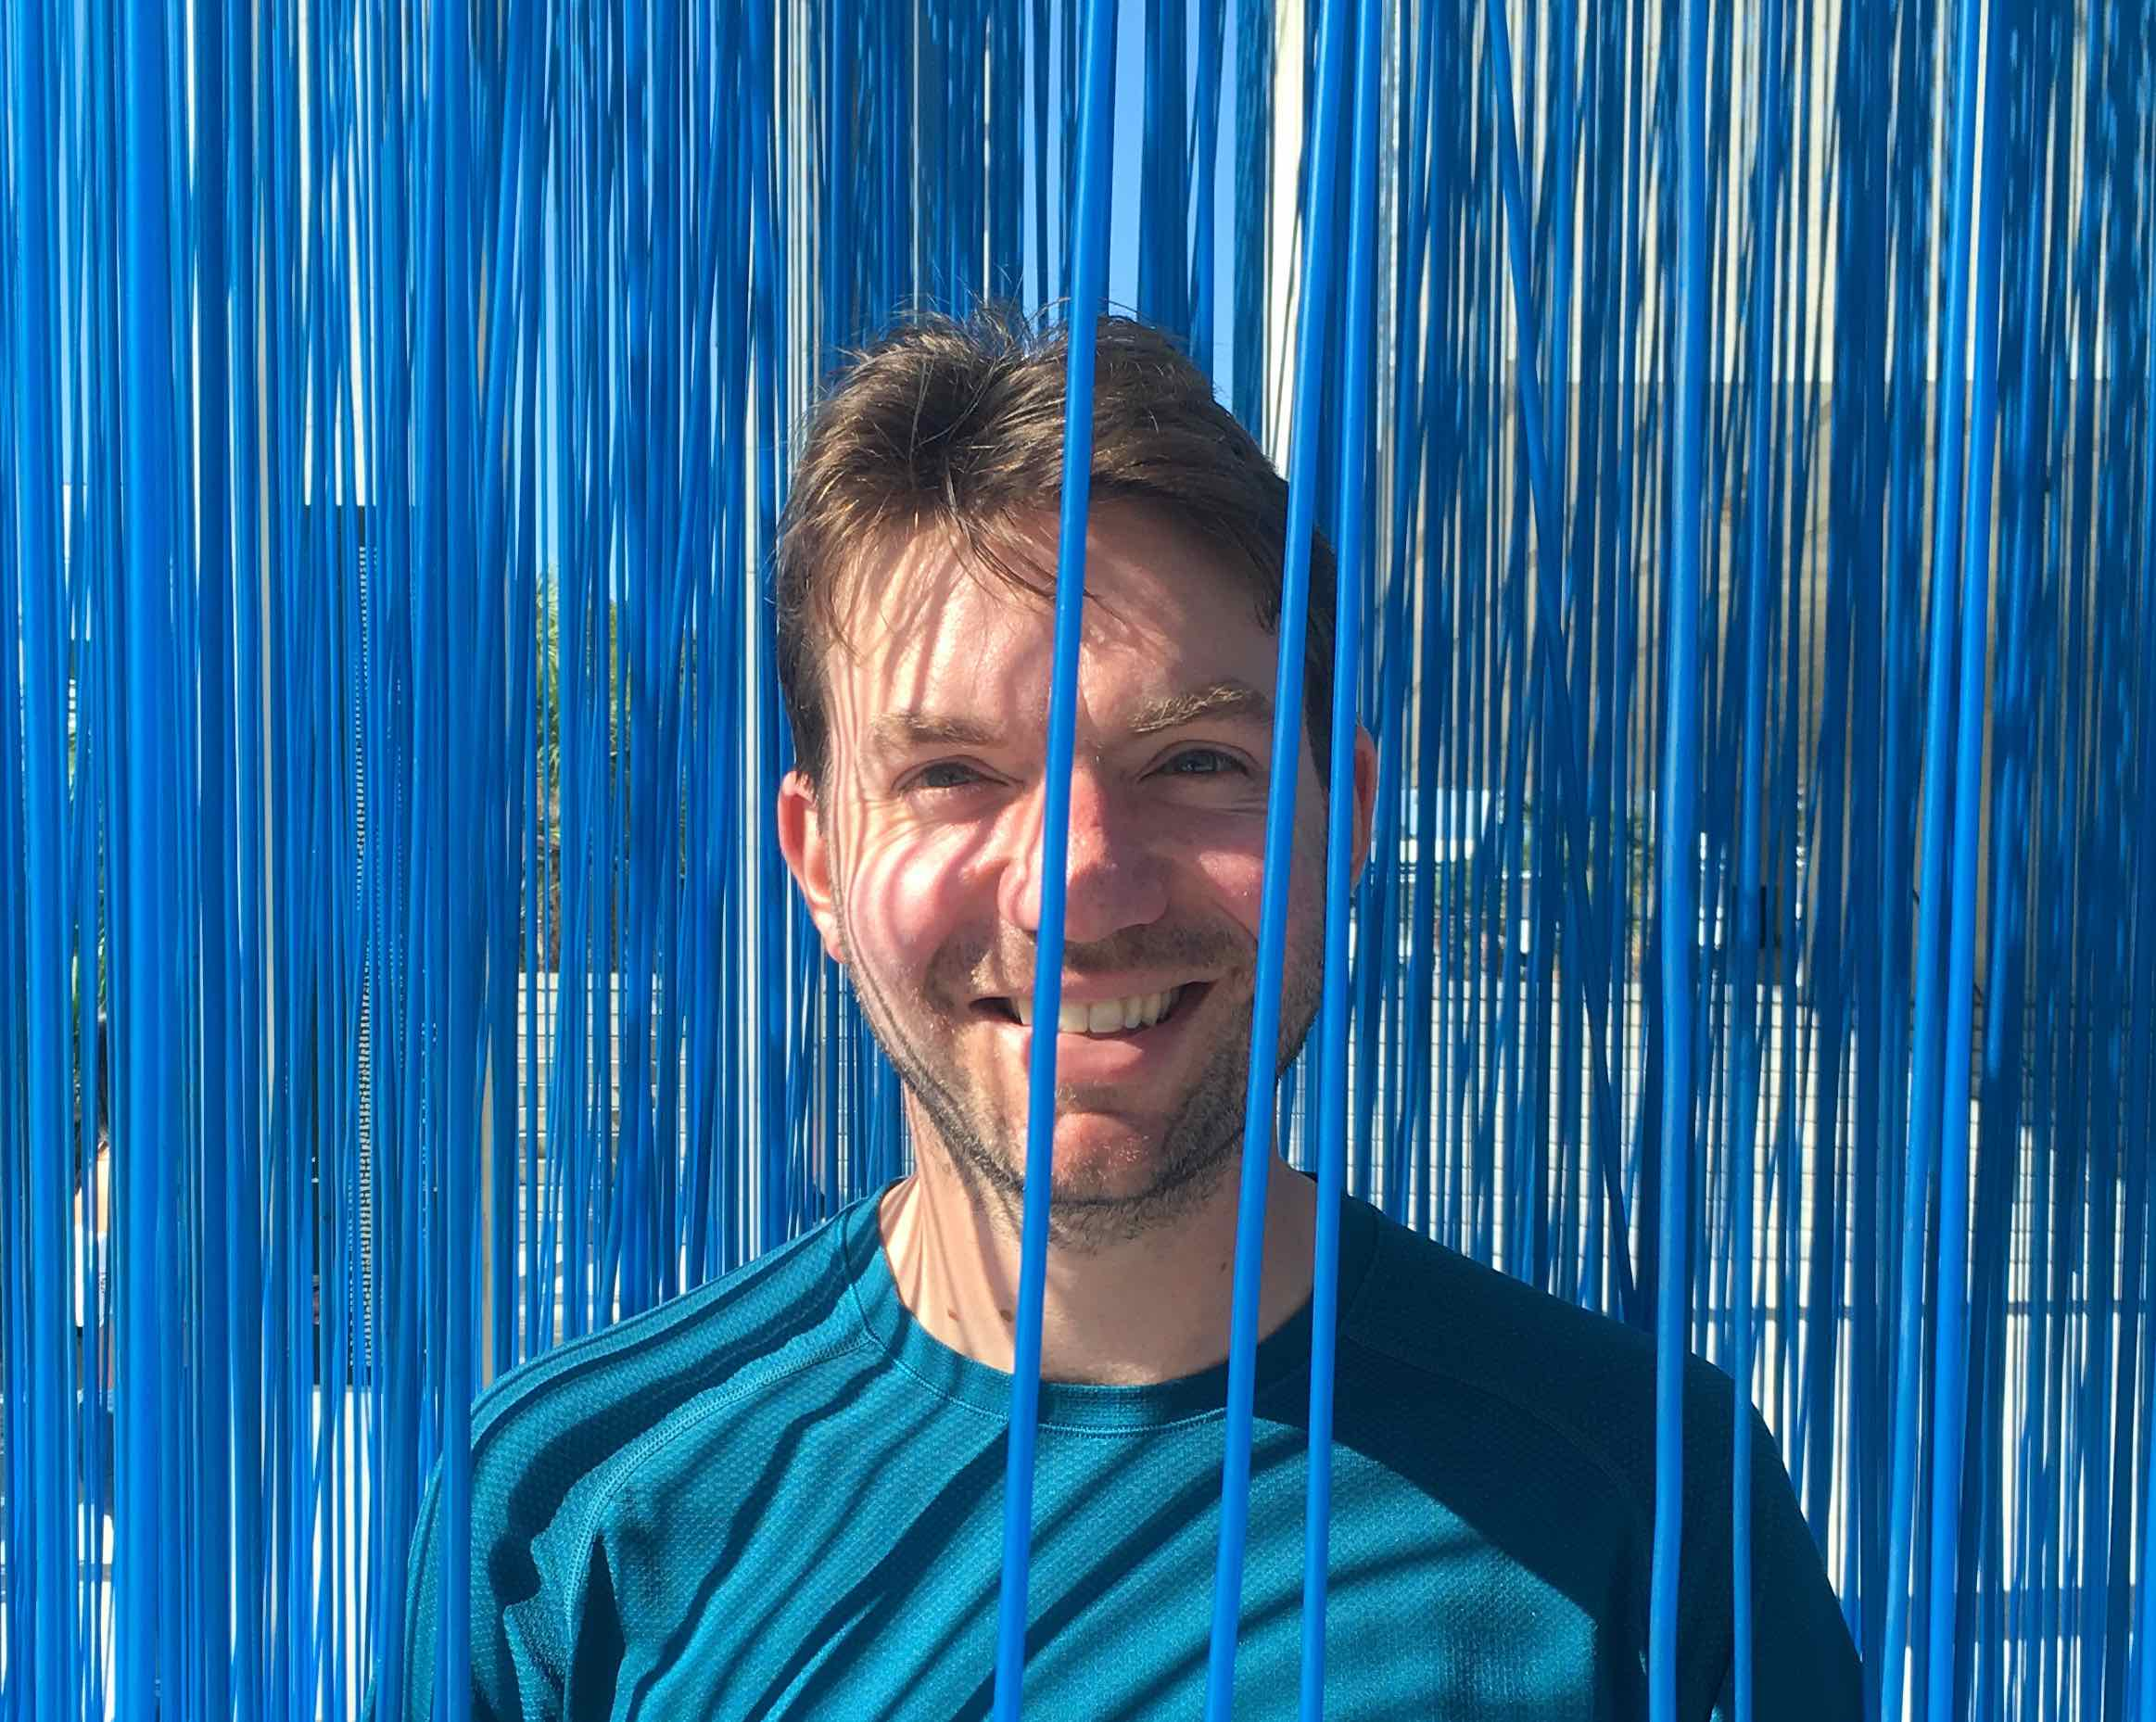 Me inside Jesuss Rafael Soto's 'Penetrable BBL Blue 2/8' at the Perez Art Museum in Miami